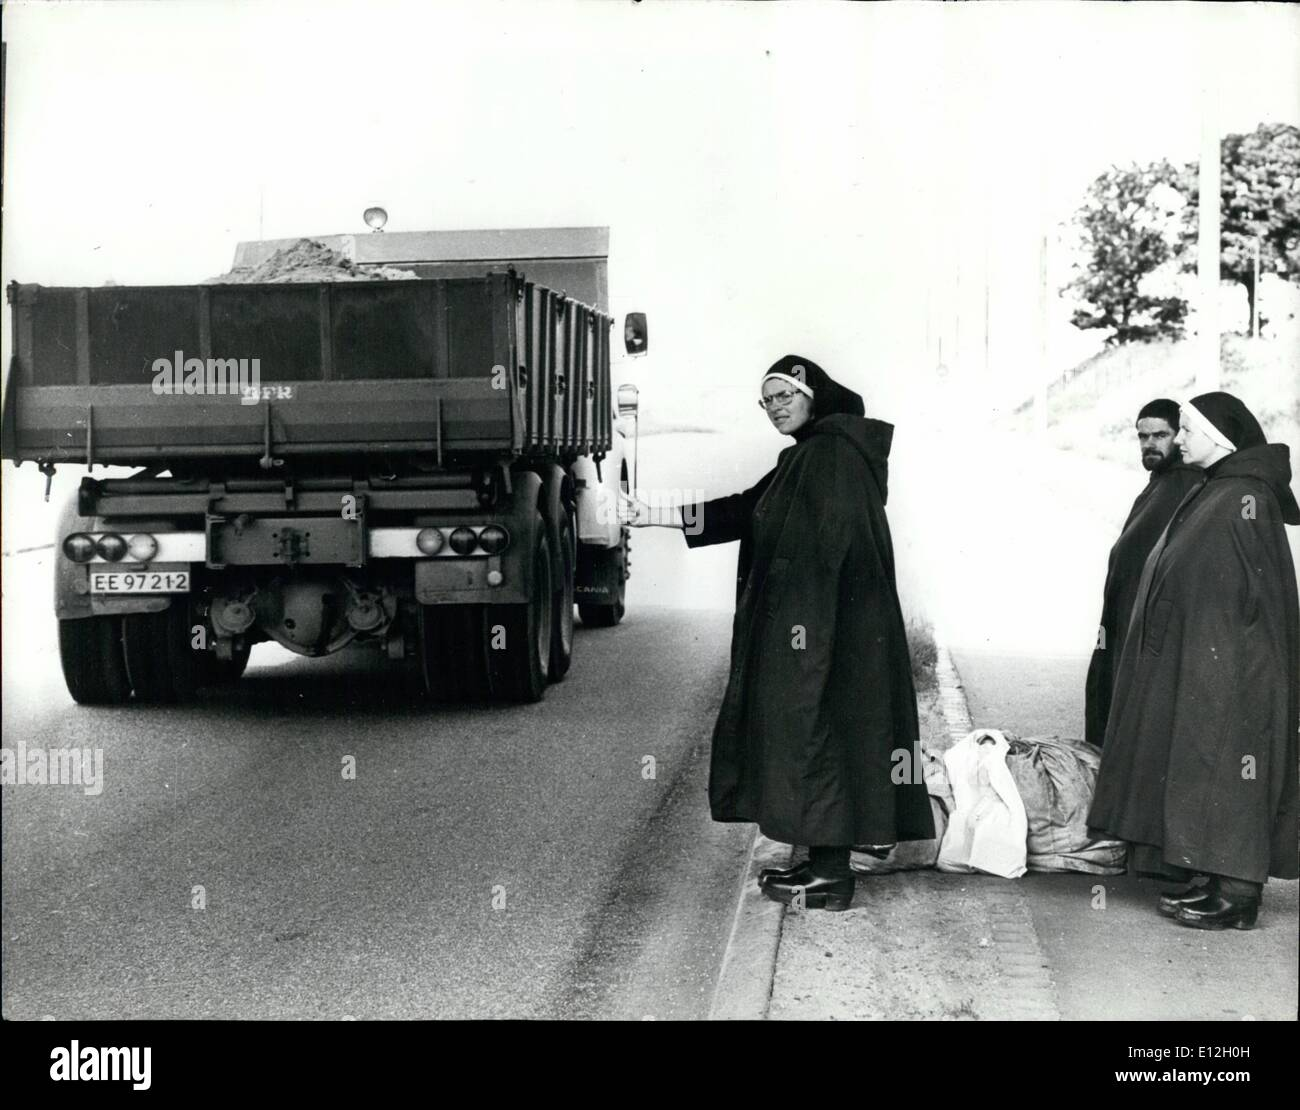 Jan. 10, 2012 - Praying for a Life: Praise the Lord, 'and give us a lift', say these two Nuns and a Monk, as they stand at a Dabish roadside. The party had hitch hiked all the way from Ireland. - Stock Image